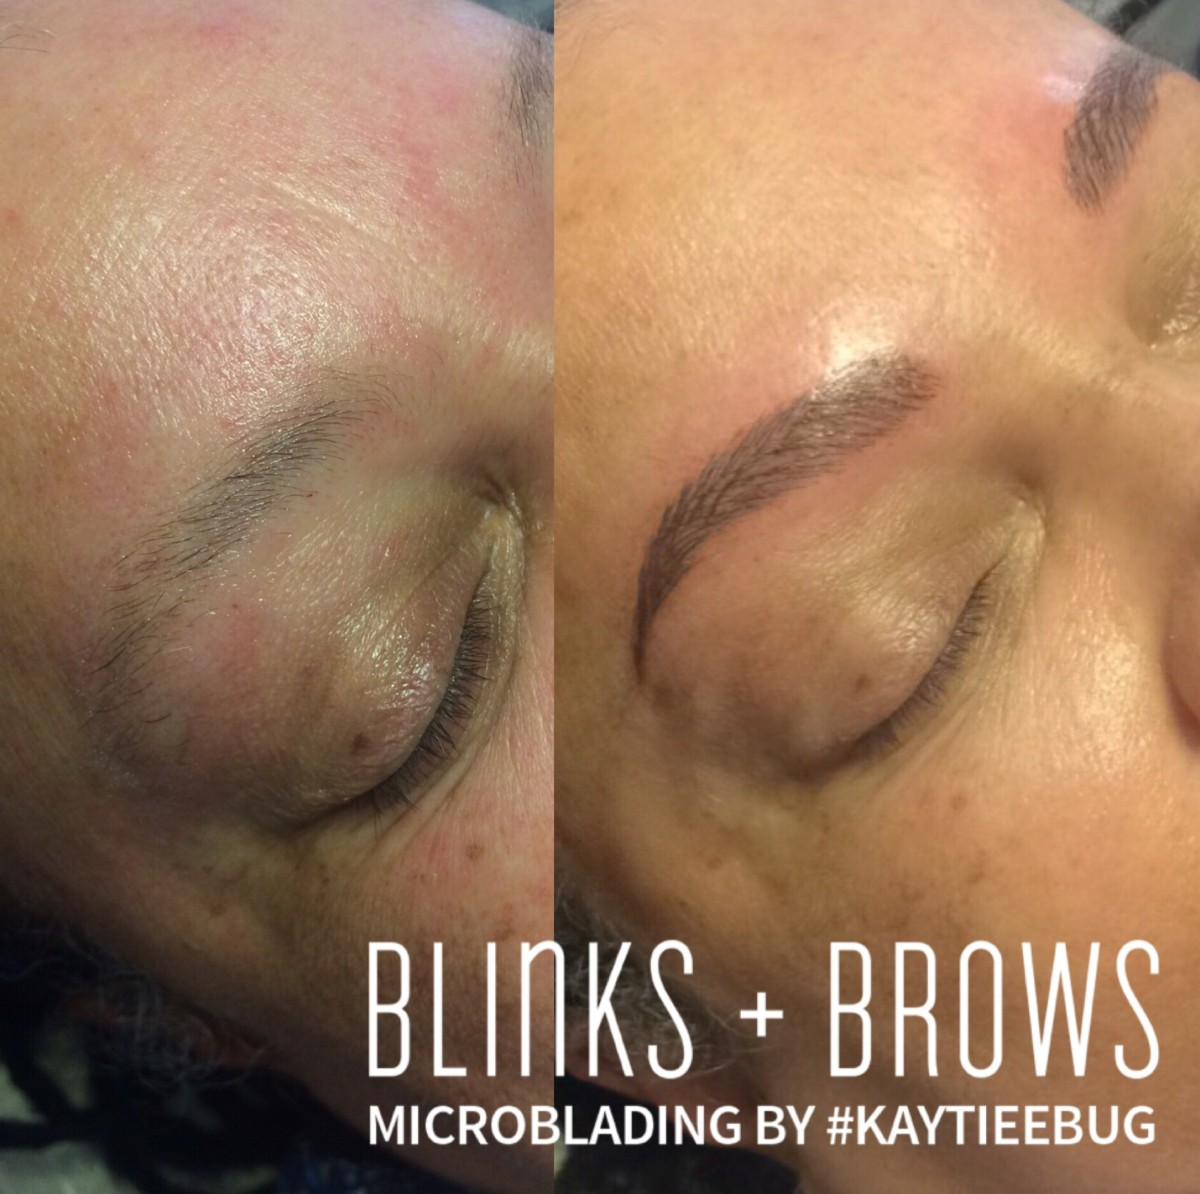 Blinks and Brows - Microblading